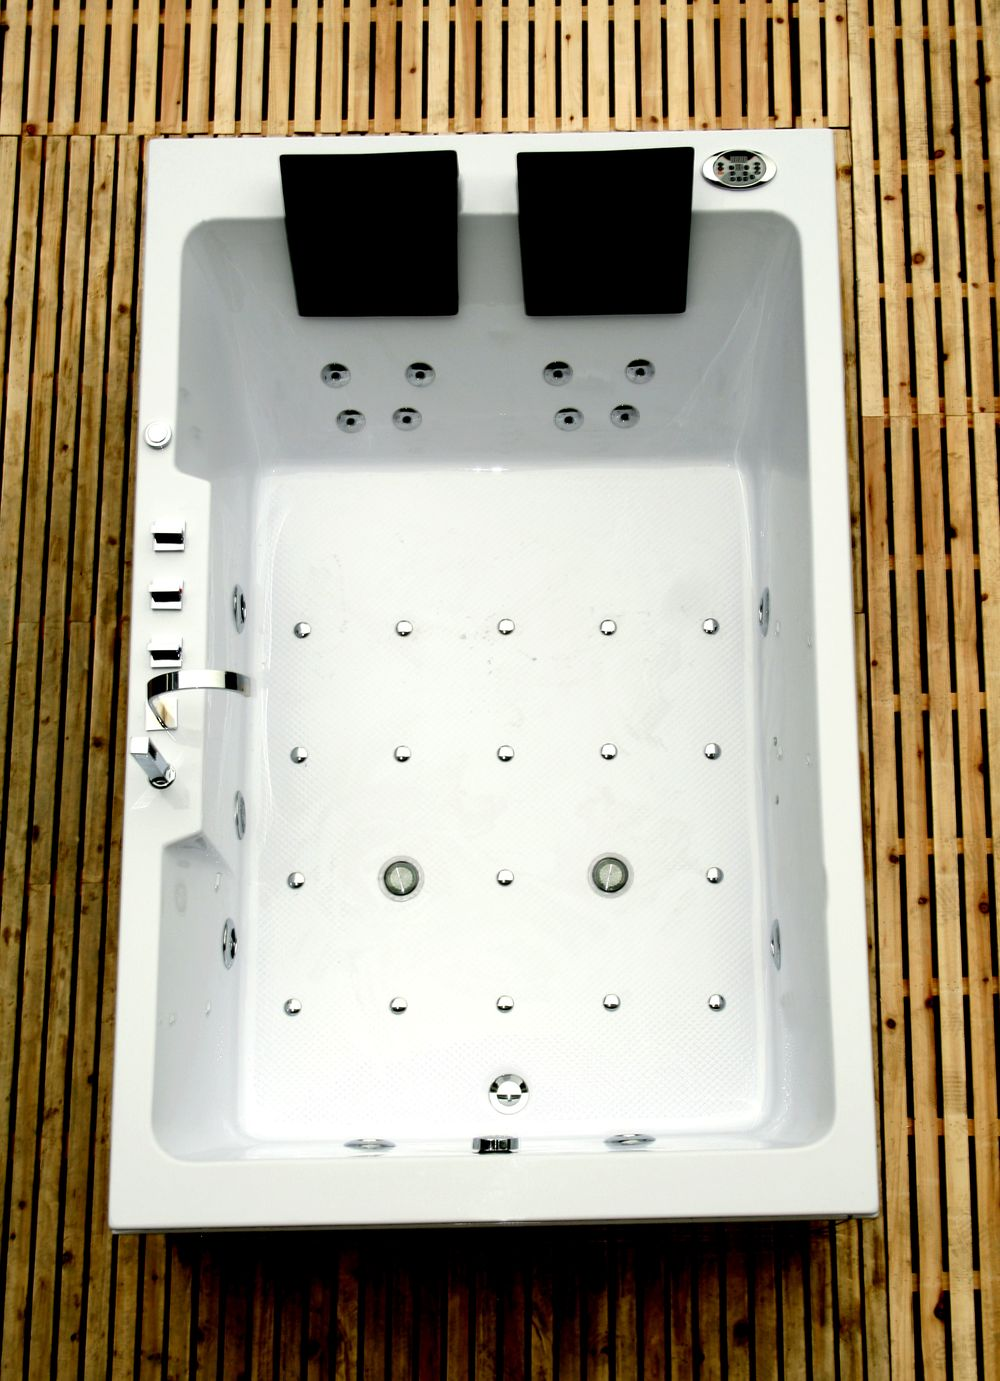 whirlpool badewanne 185x120 eckbadewanne vollausstattung mod 42 ebay. Black Bedroom Furniture Sets. Home Design Ideas